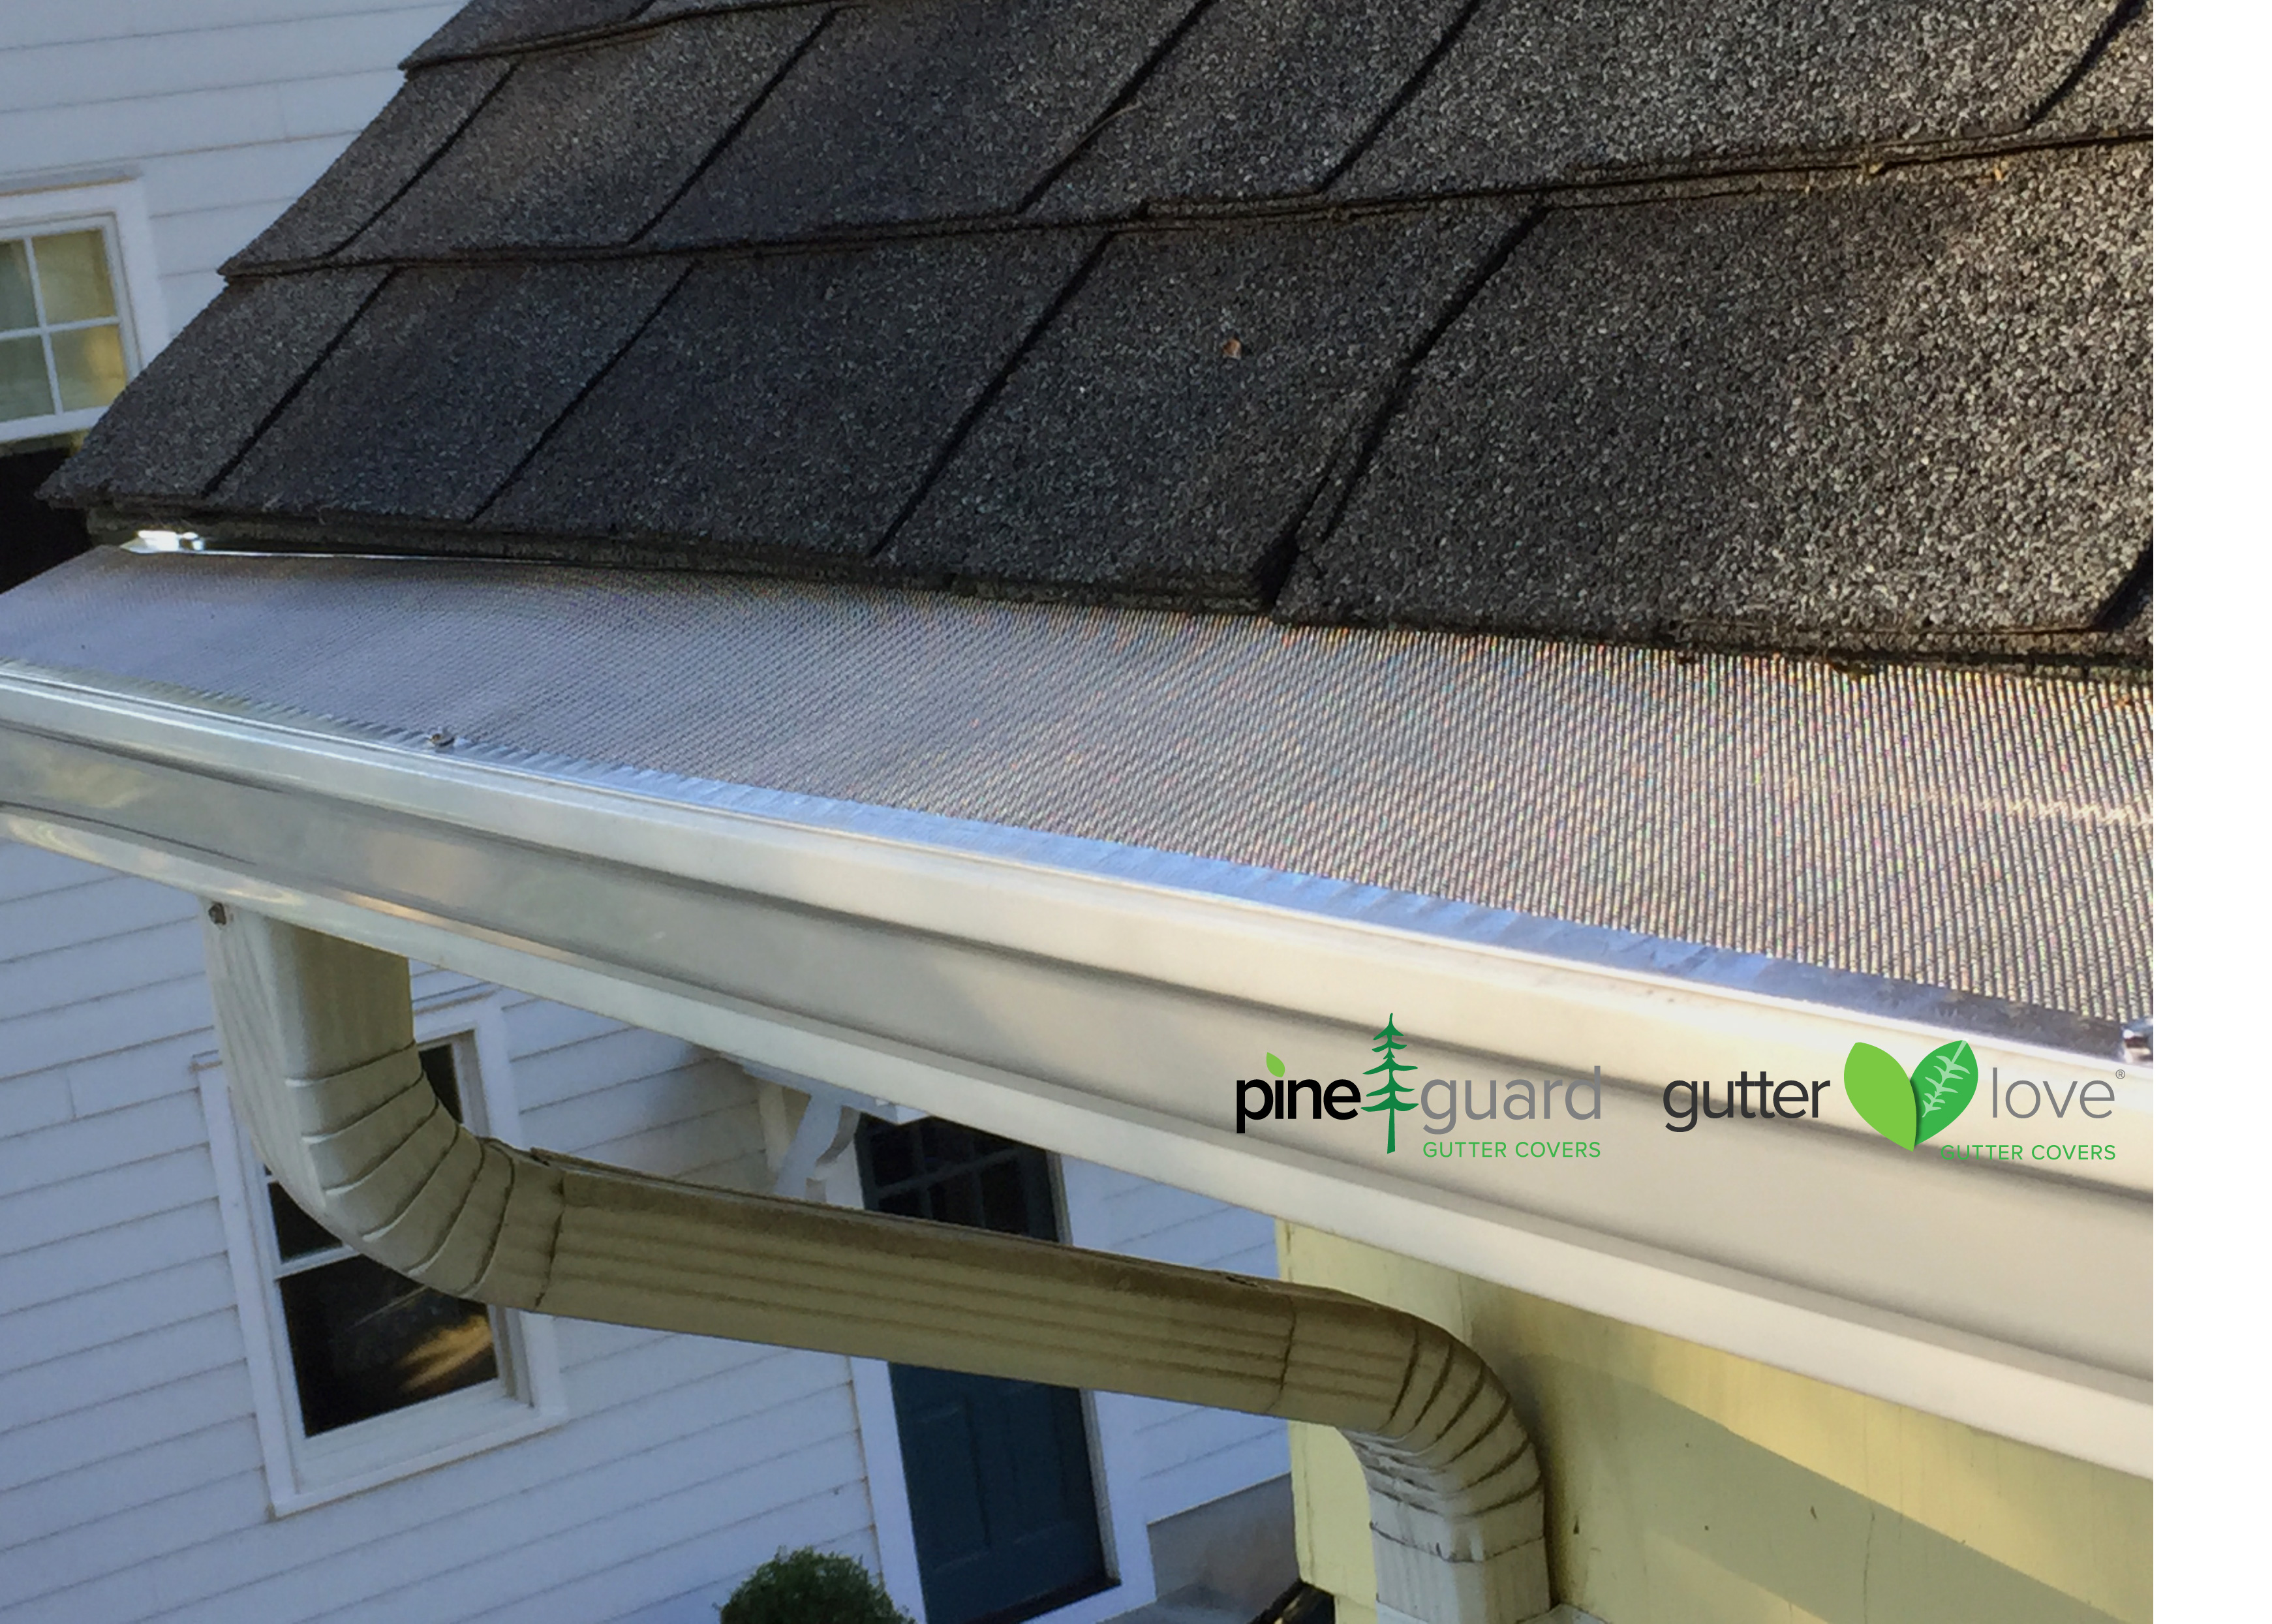 Gutterlove Gutter Covers Gutter Guards Microfiltration